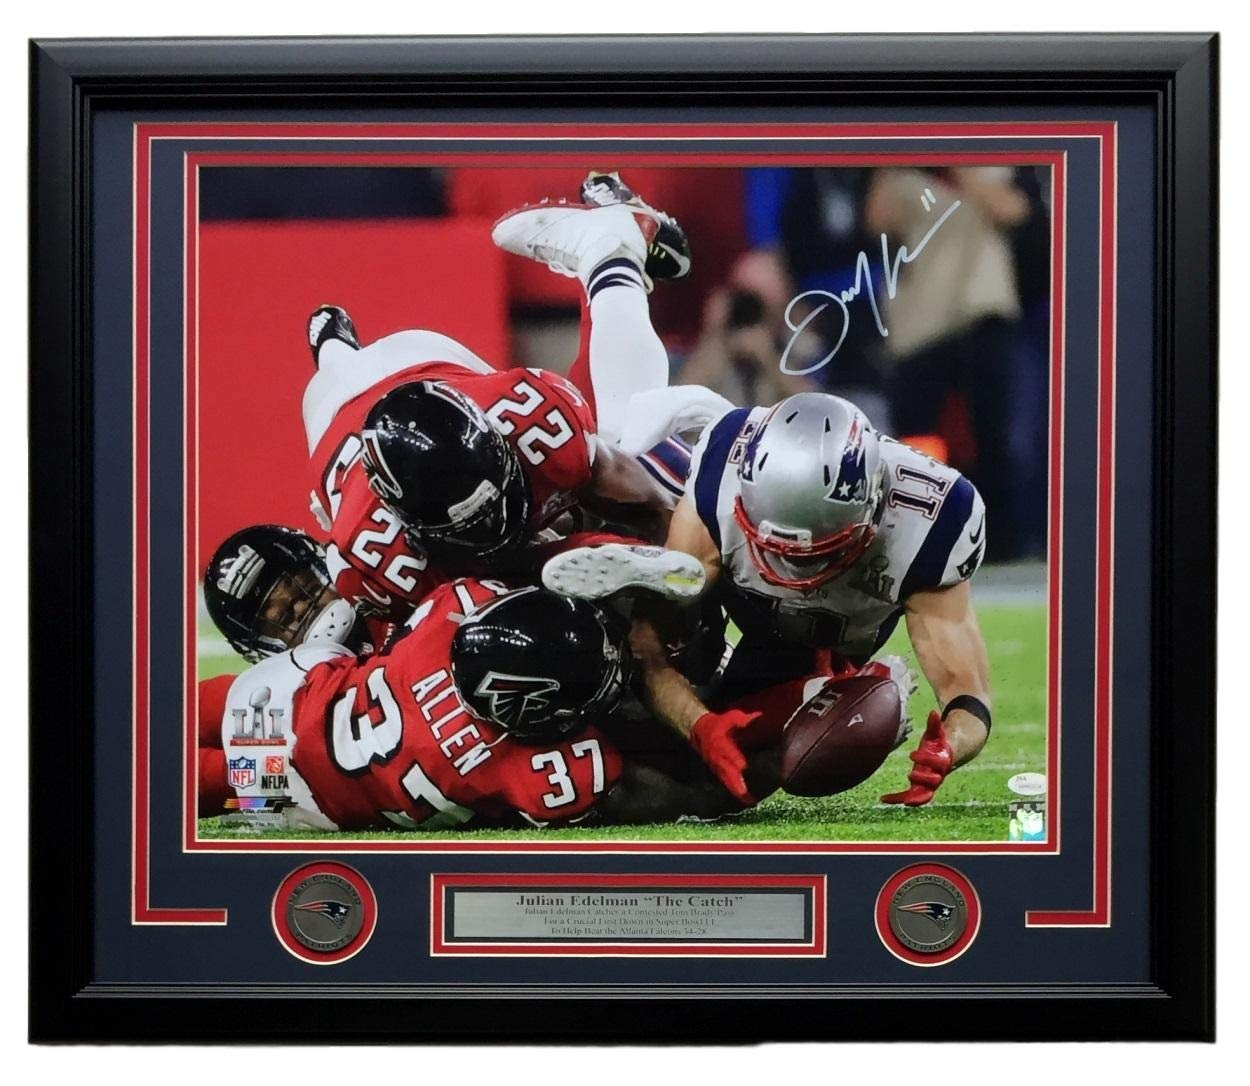 Julian Edelman Signed Framed 16x20 New England Patriots Super Bowl LI Catch JSA